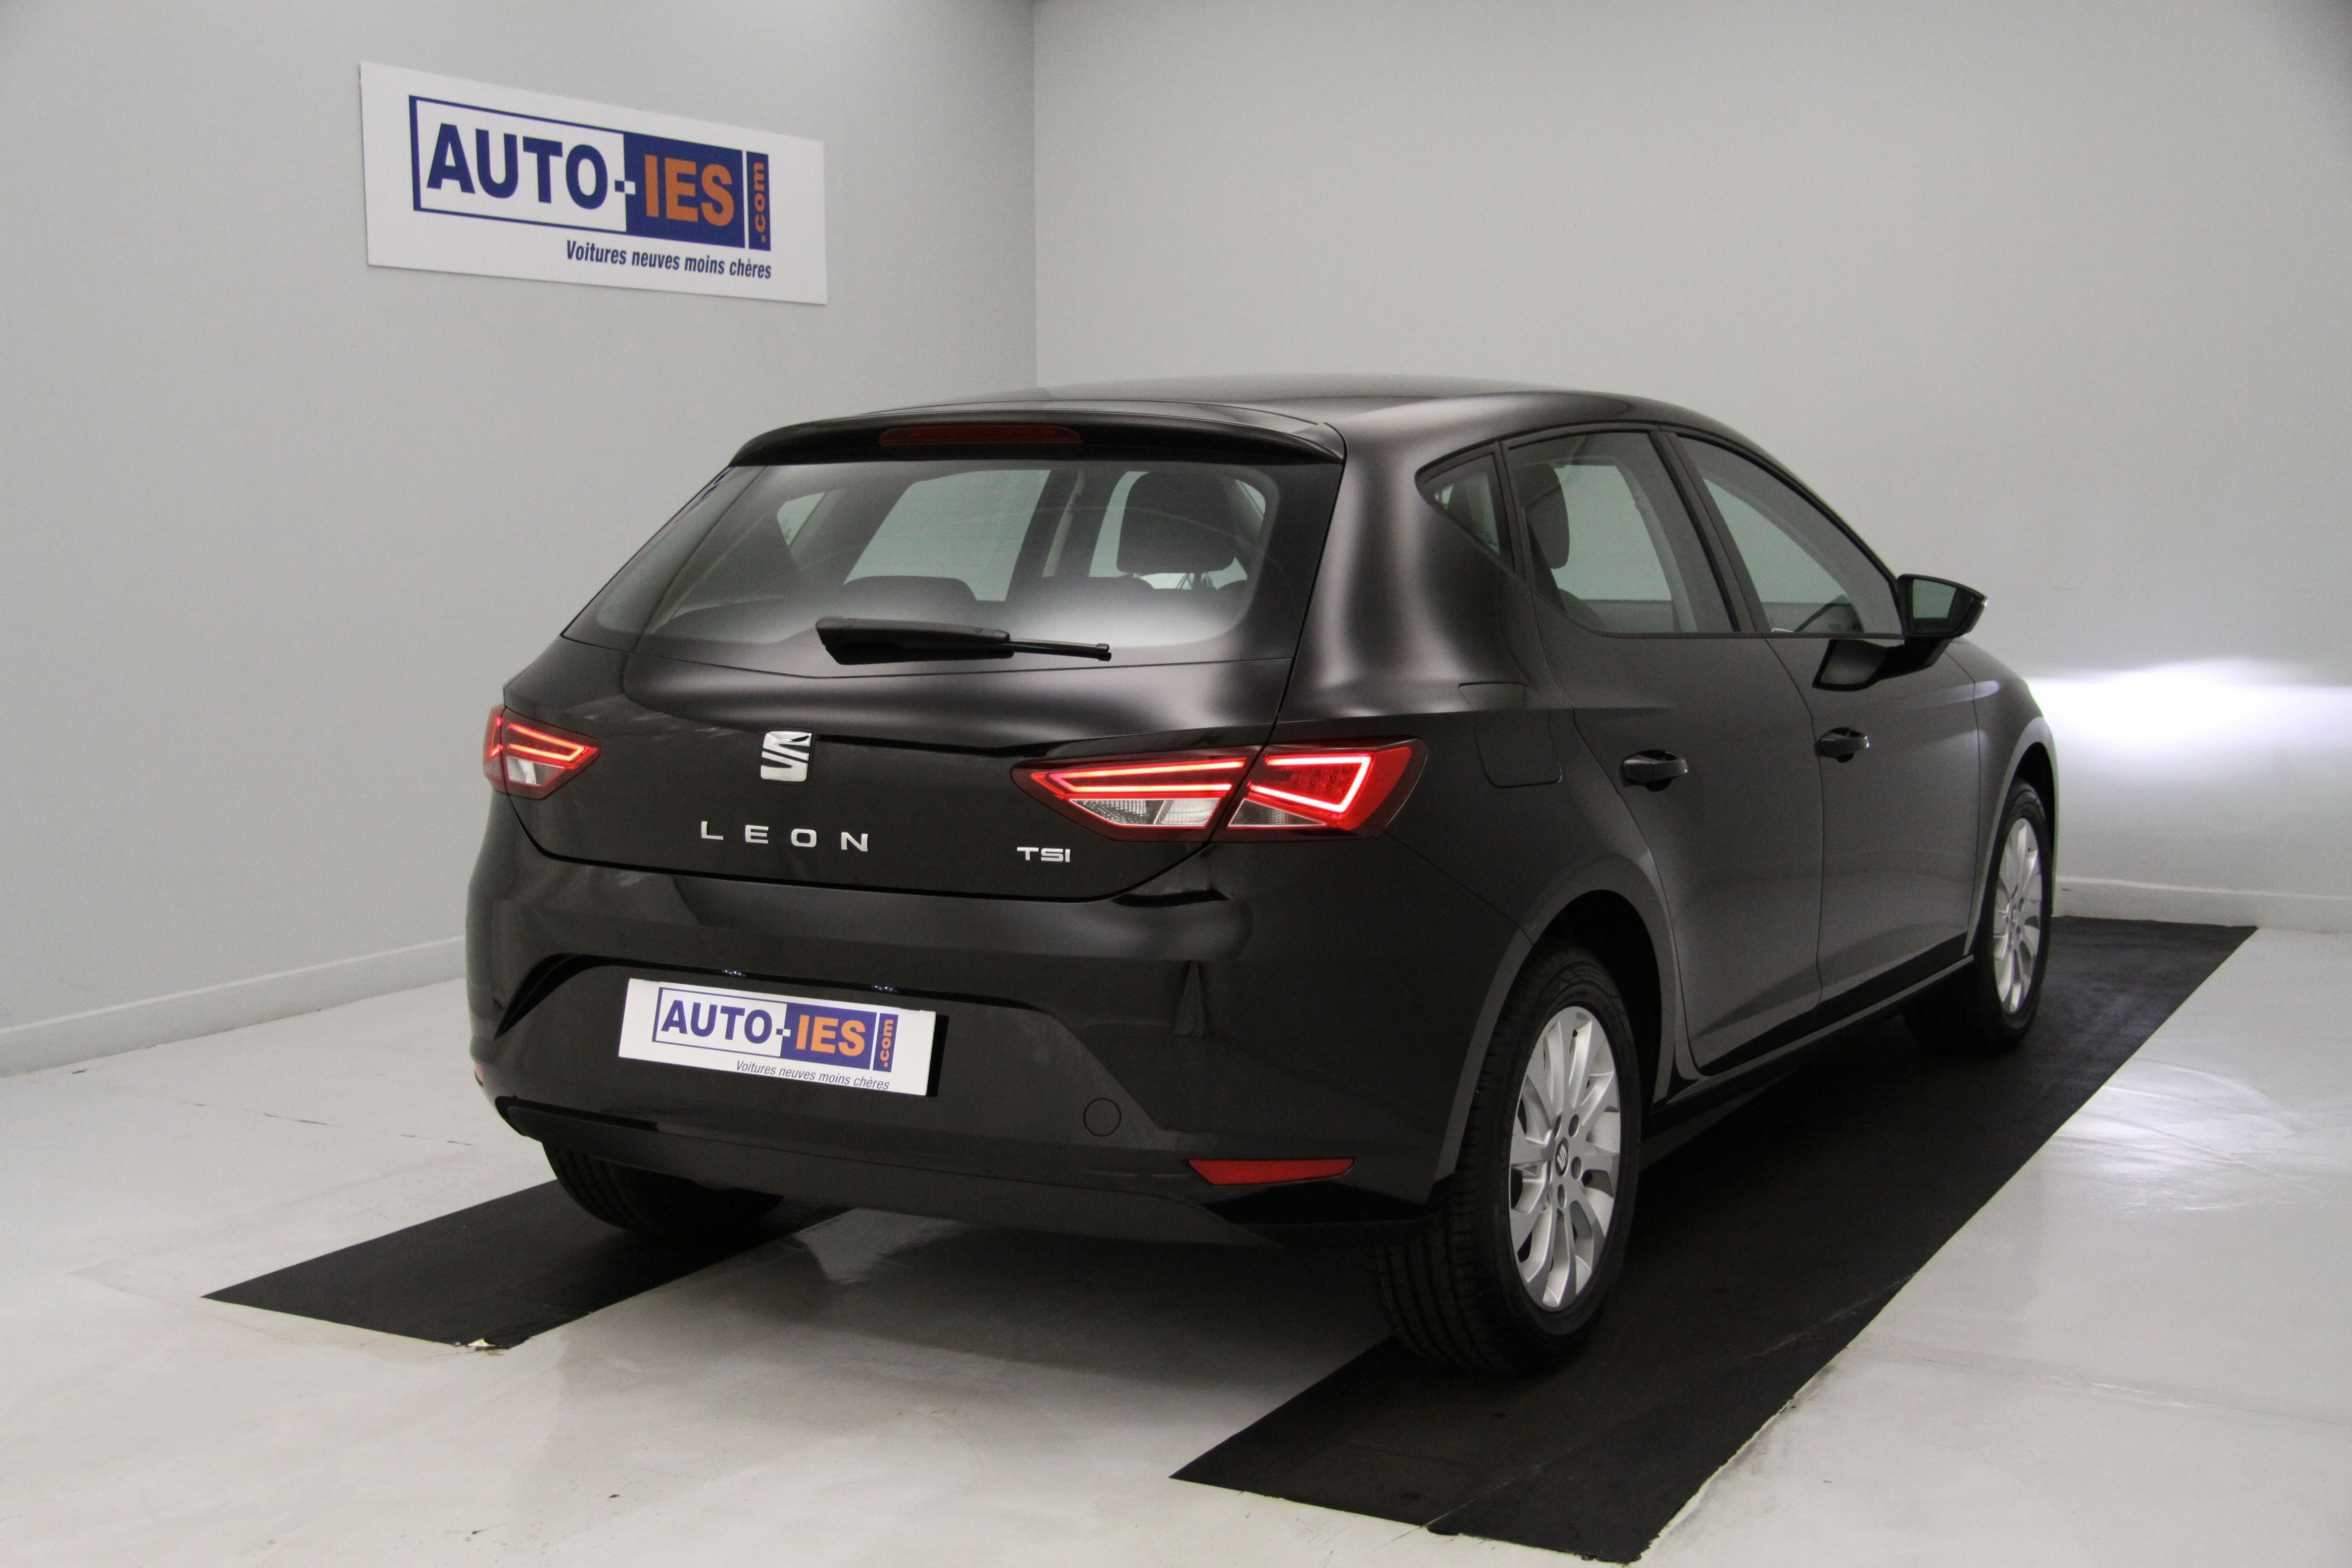 seat leon nouvelle 1 2 tsi 110 start stop noir minuit gps avec options style essence 42904738. Black Bedroom Furniture Sets. Home Design Ideas